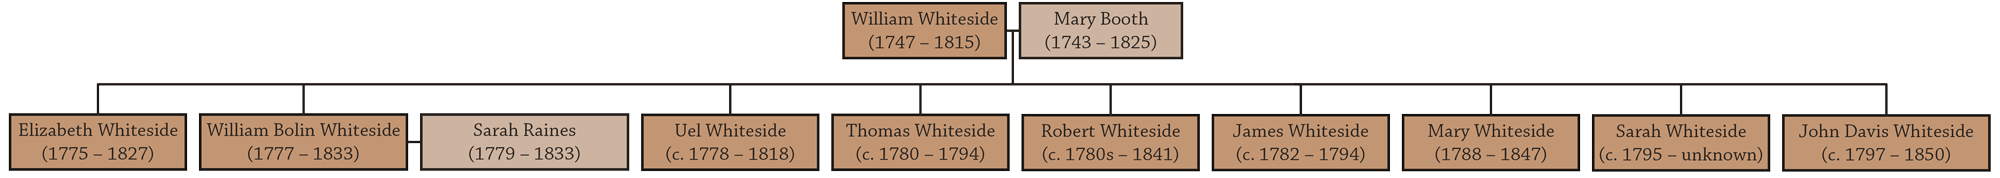 Family Tree of the second generation of Whitesides